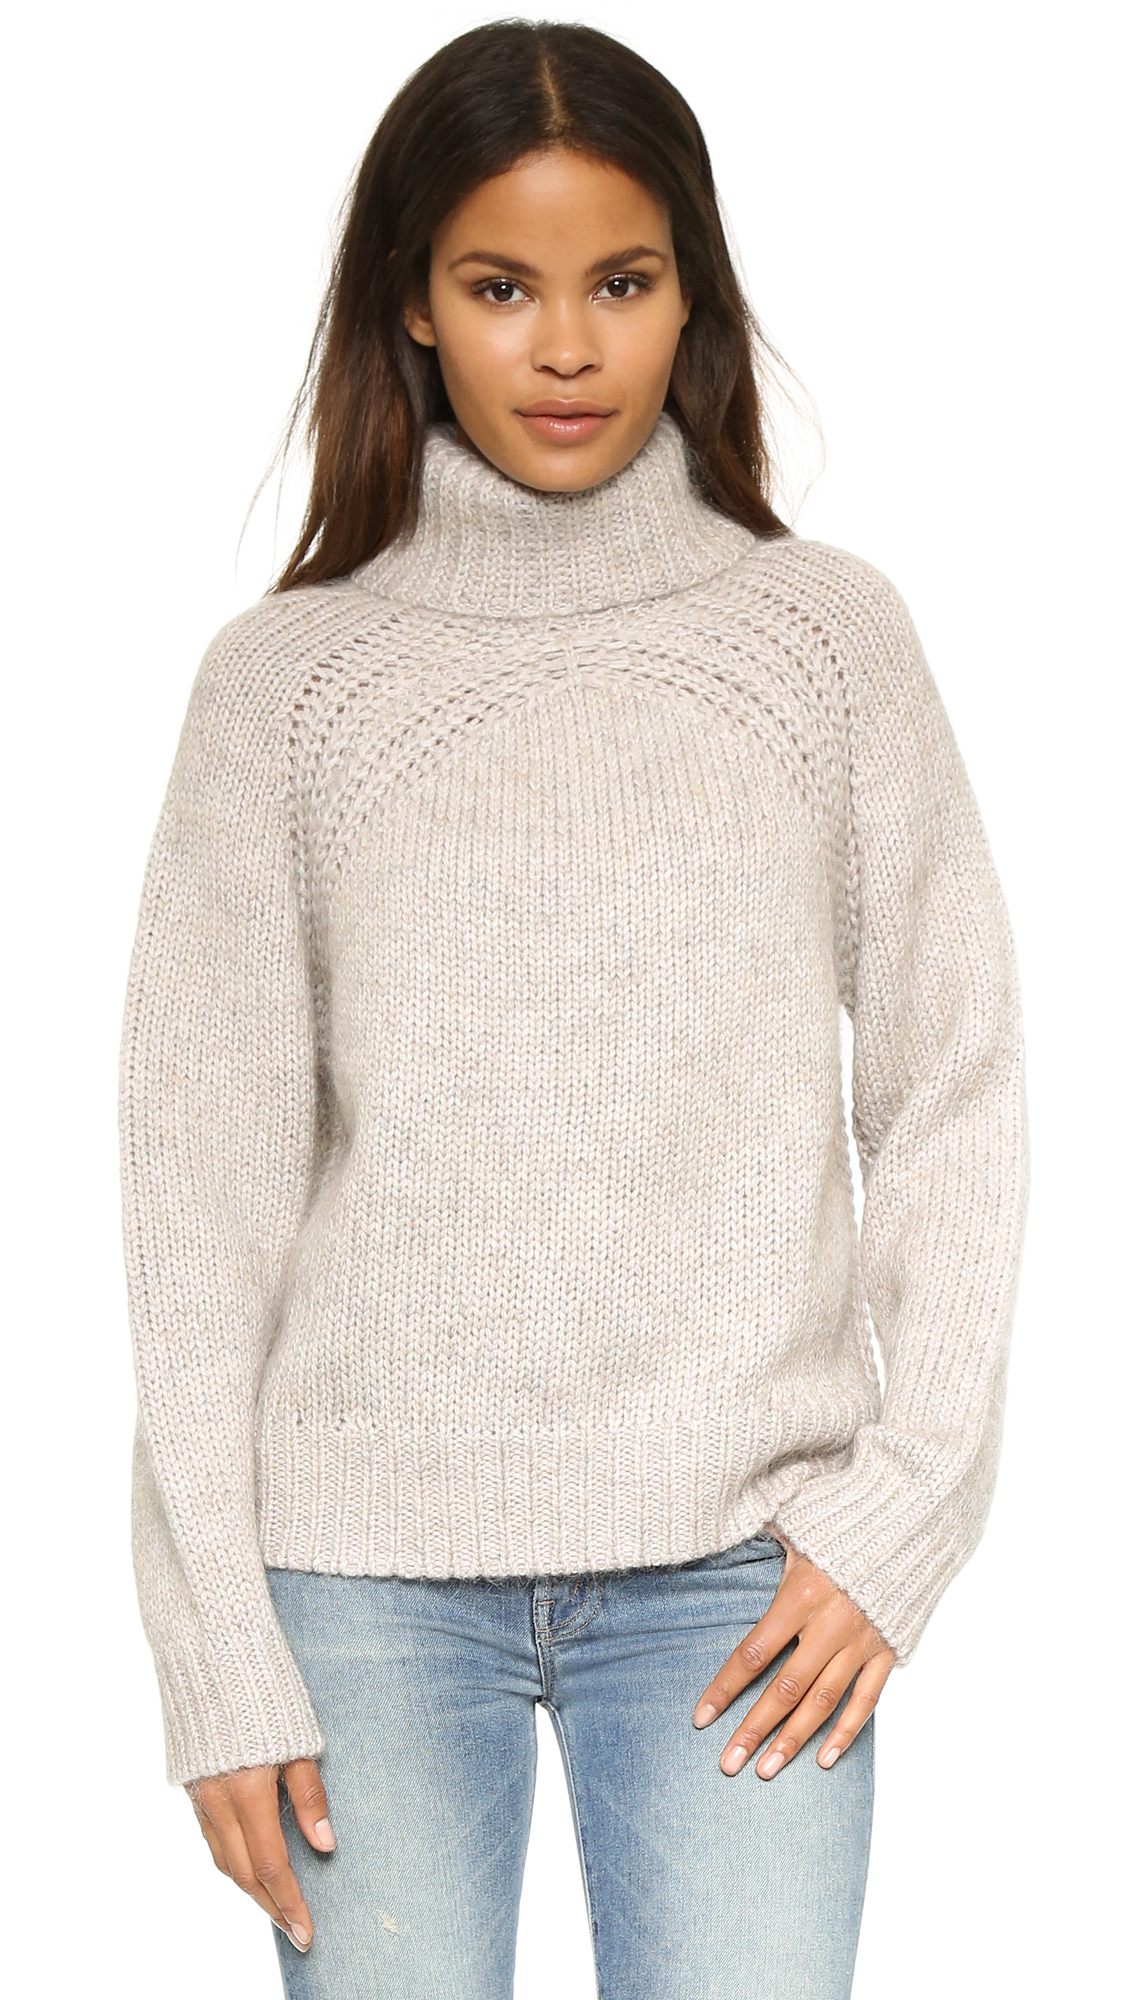 Raquel allegra Turtleneck Pullover Sweater in Natural | Lyst